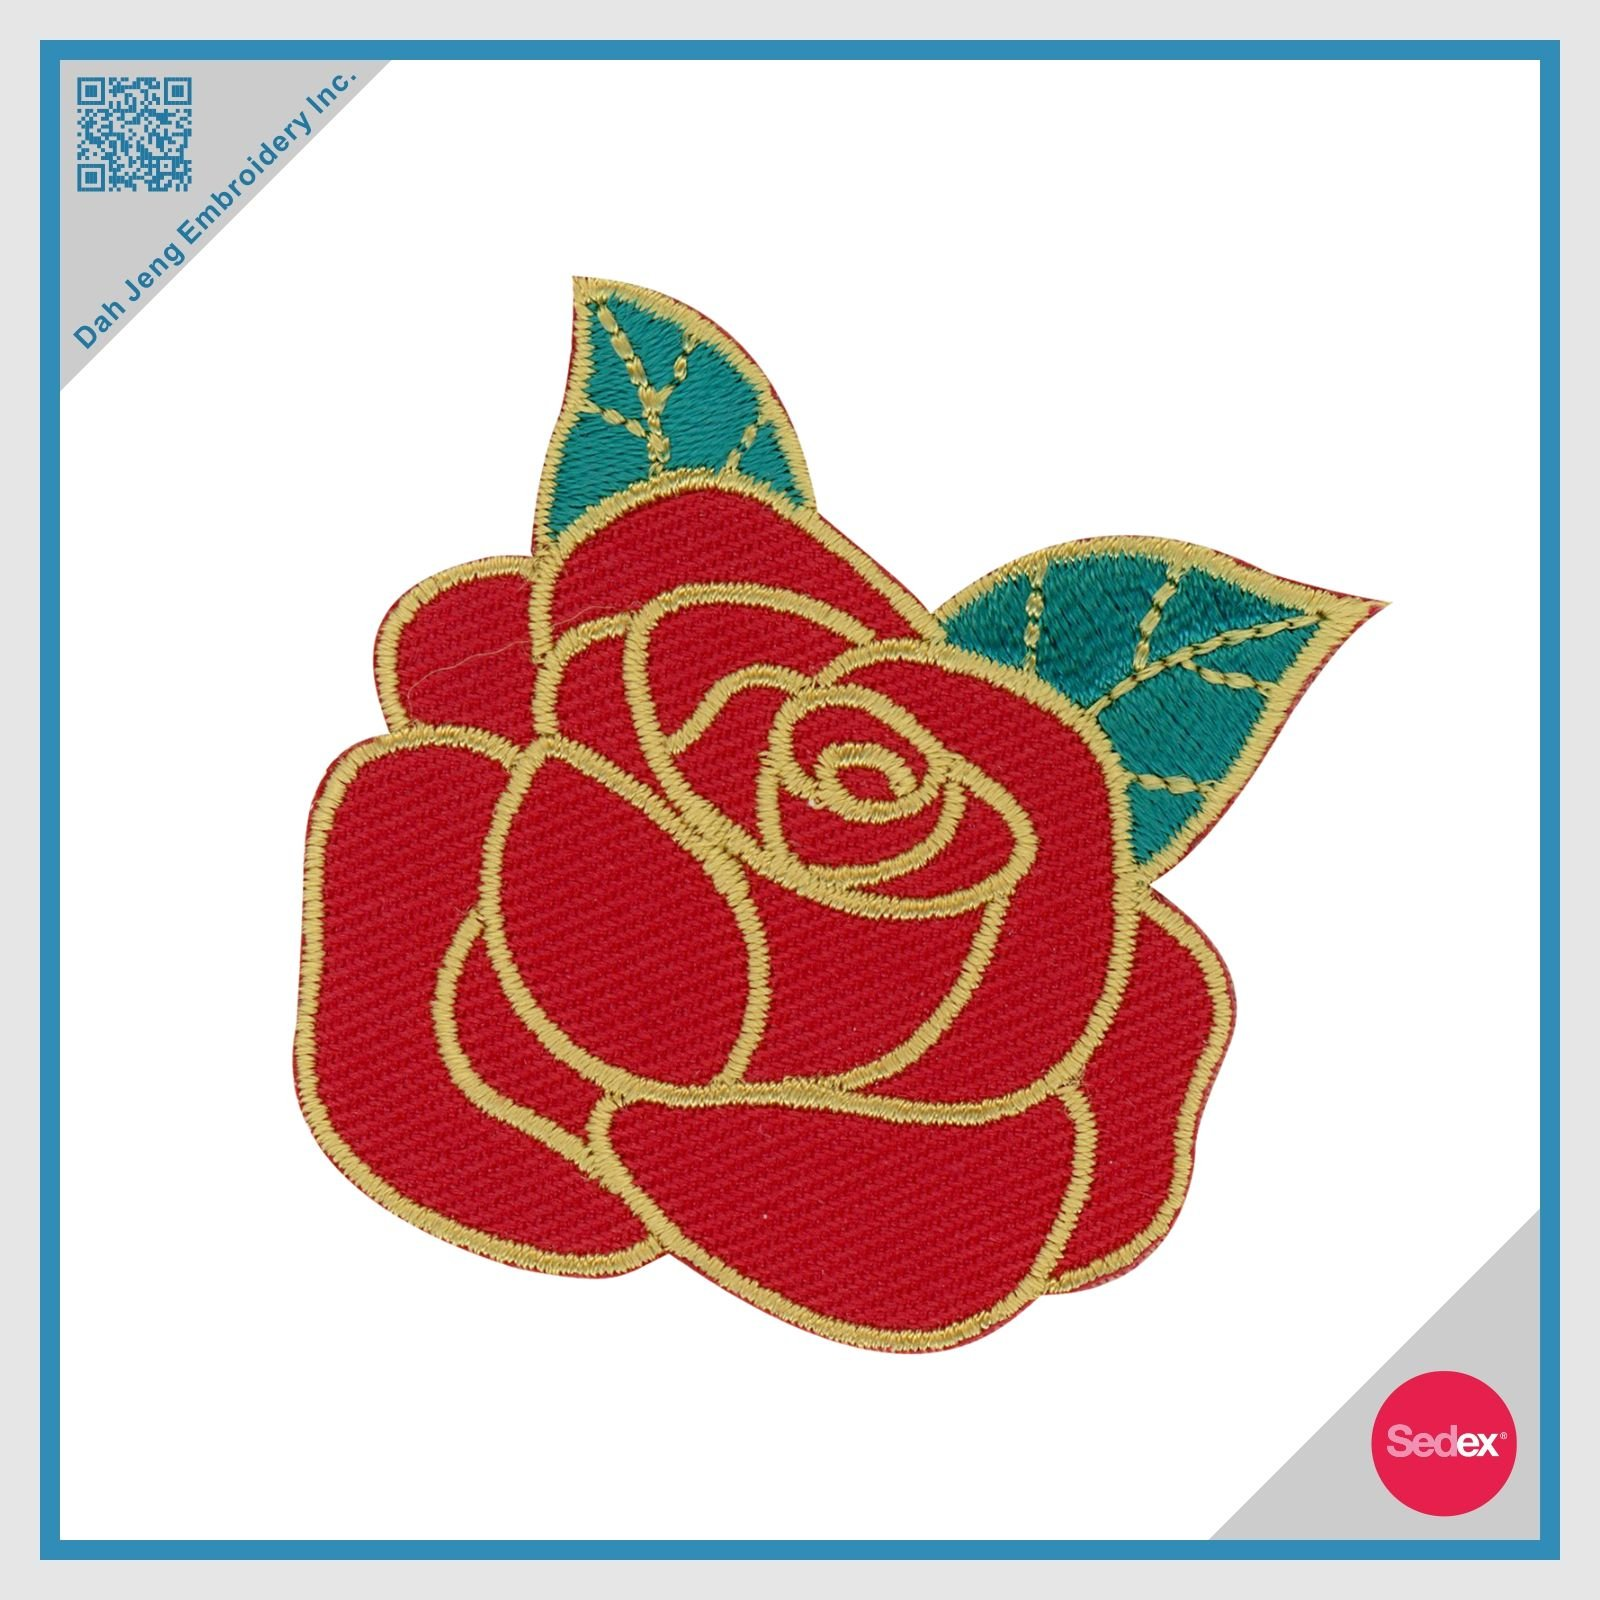 Embroidery Rose Patch